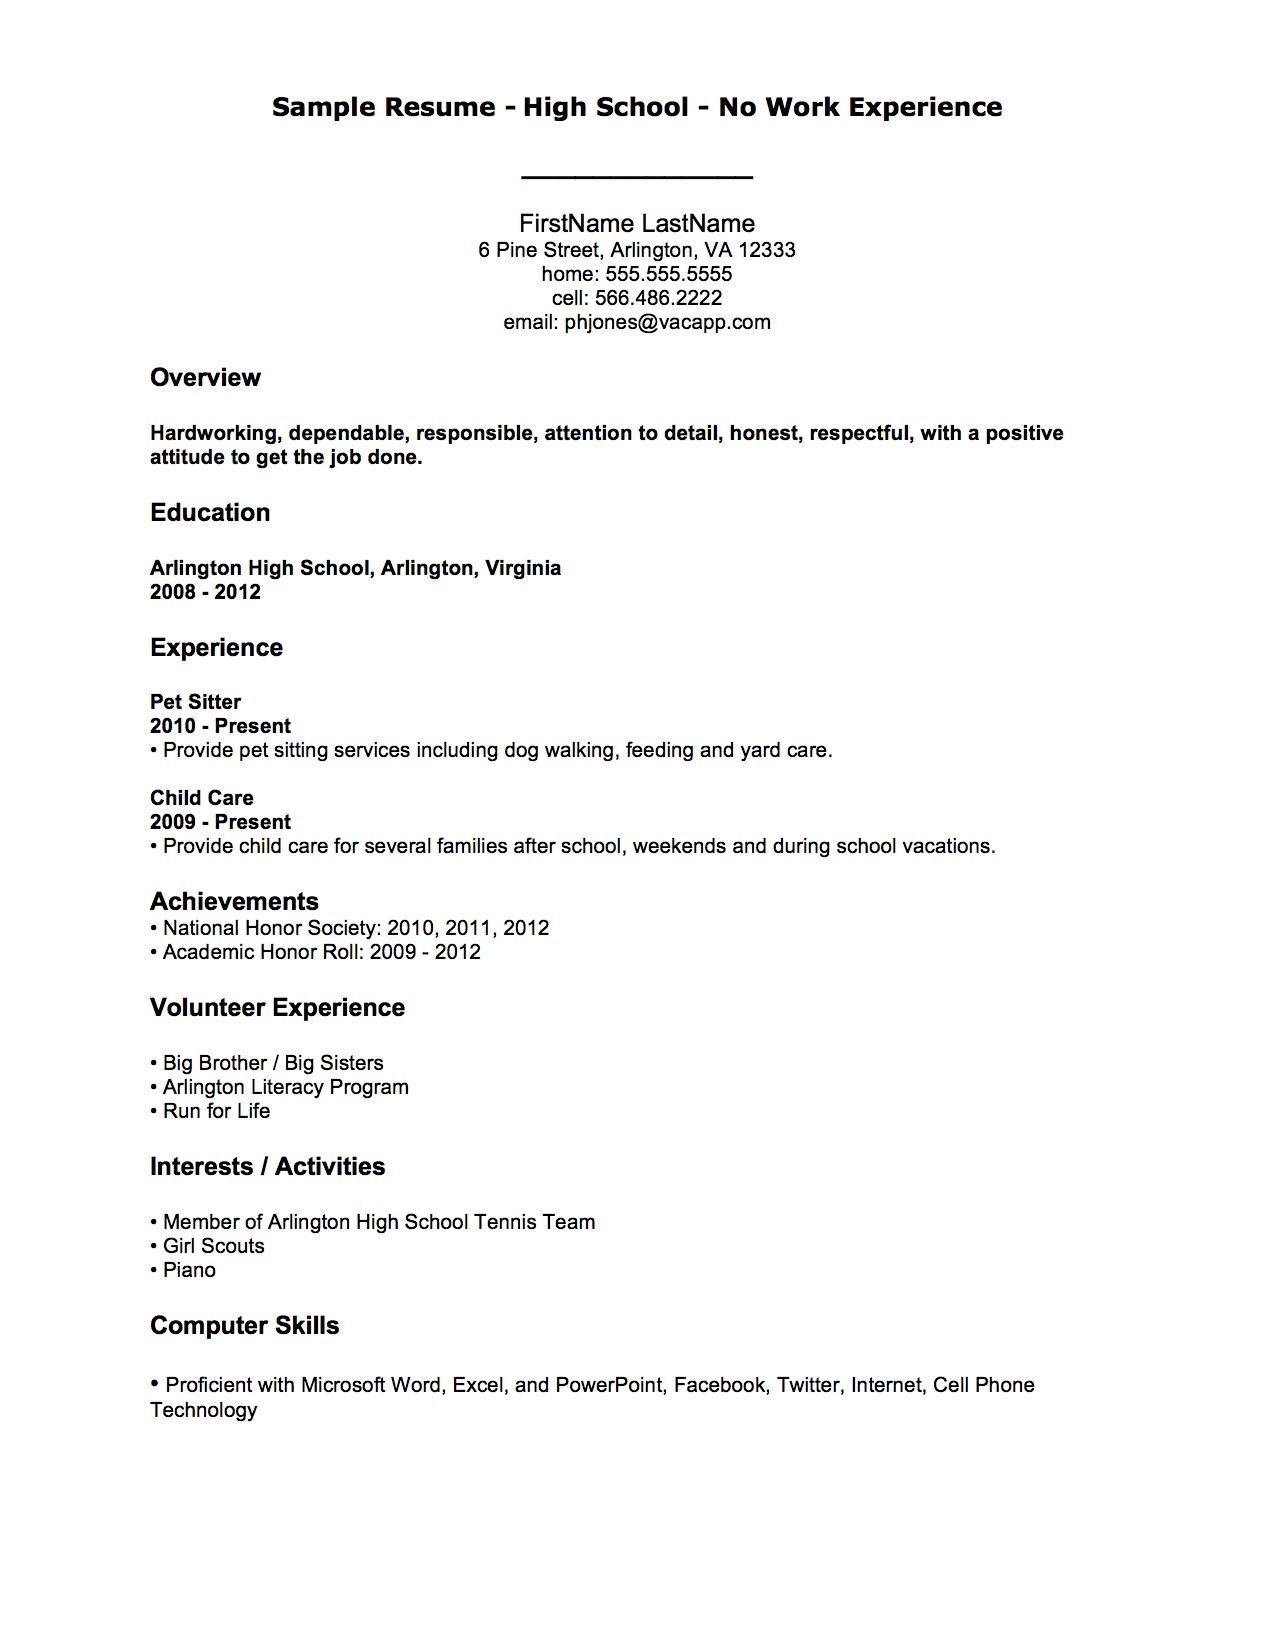 Attractive High School Student Resume Examples No Work Experience 10 Job Resume  Examples No Experience Resume Resume For First Job . And Examples Of Resumes For Jobs With No Experience